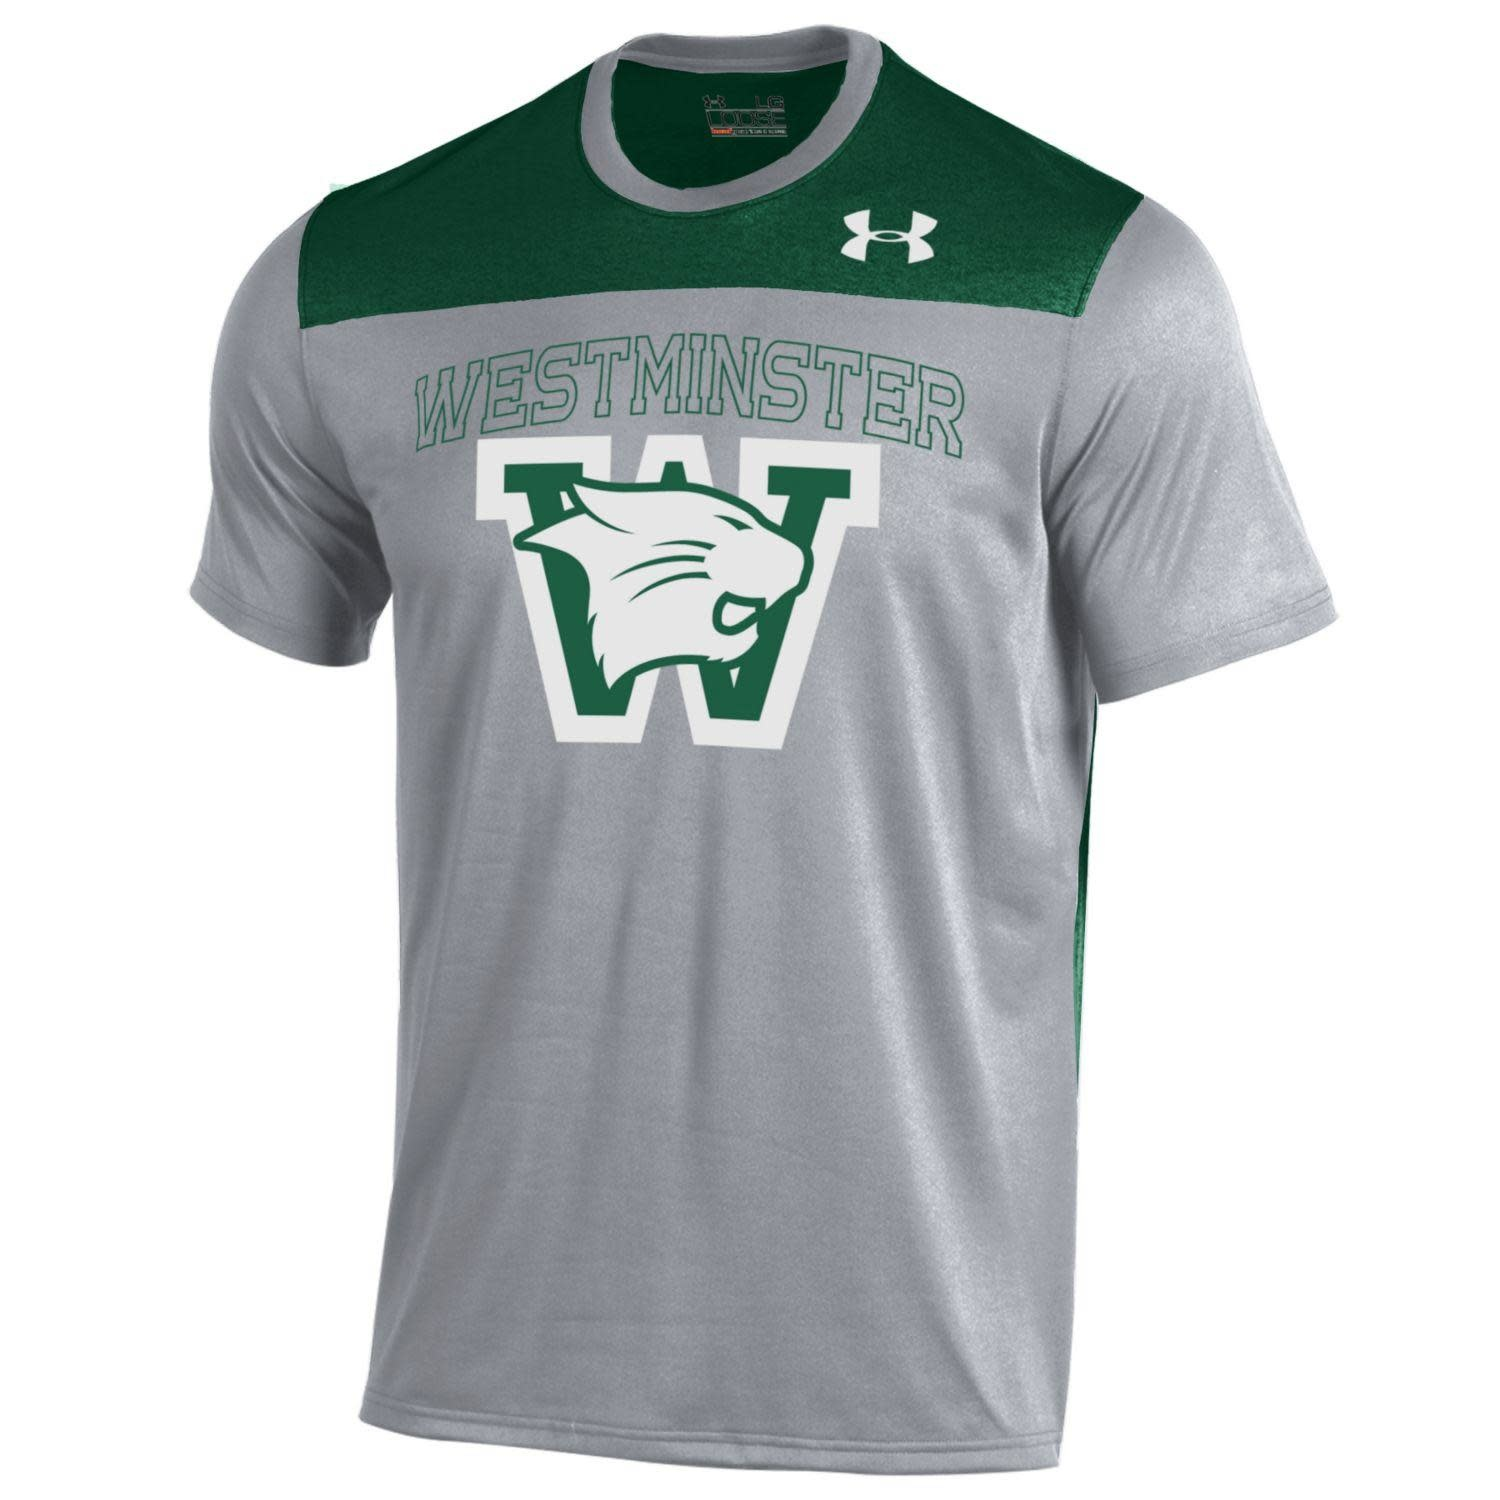 Under Armour T: UA Tech Green/Gray/White Cathead over W